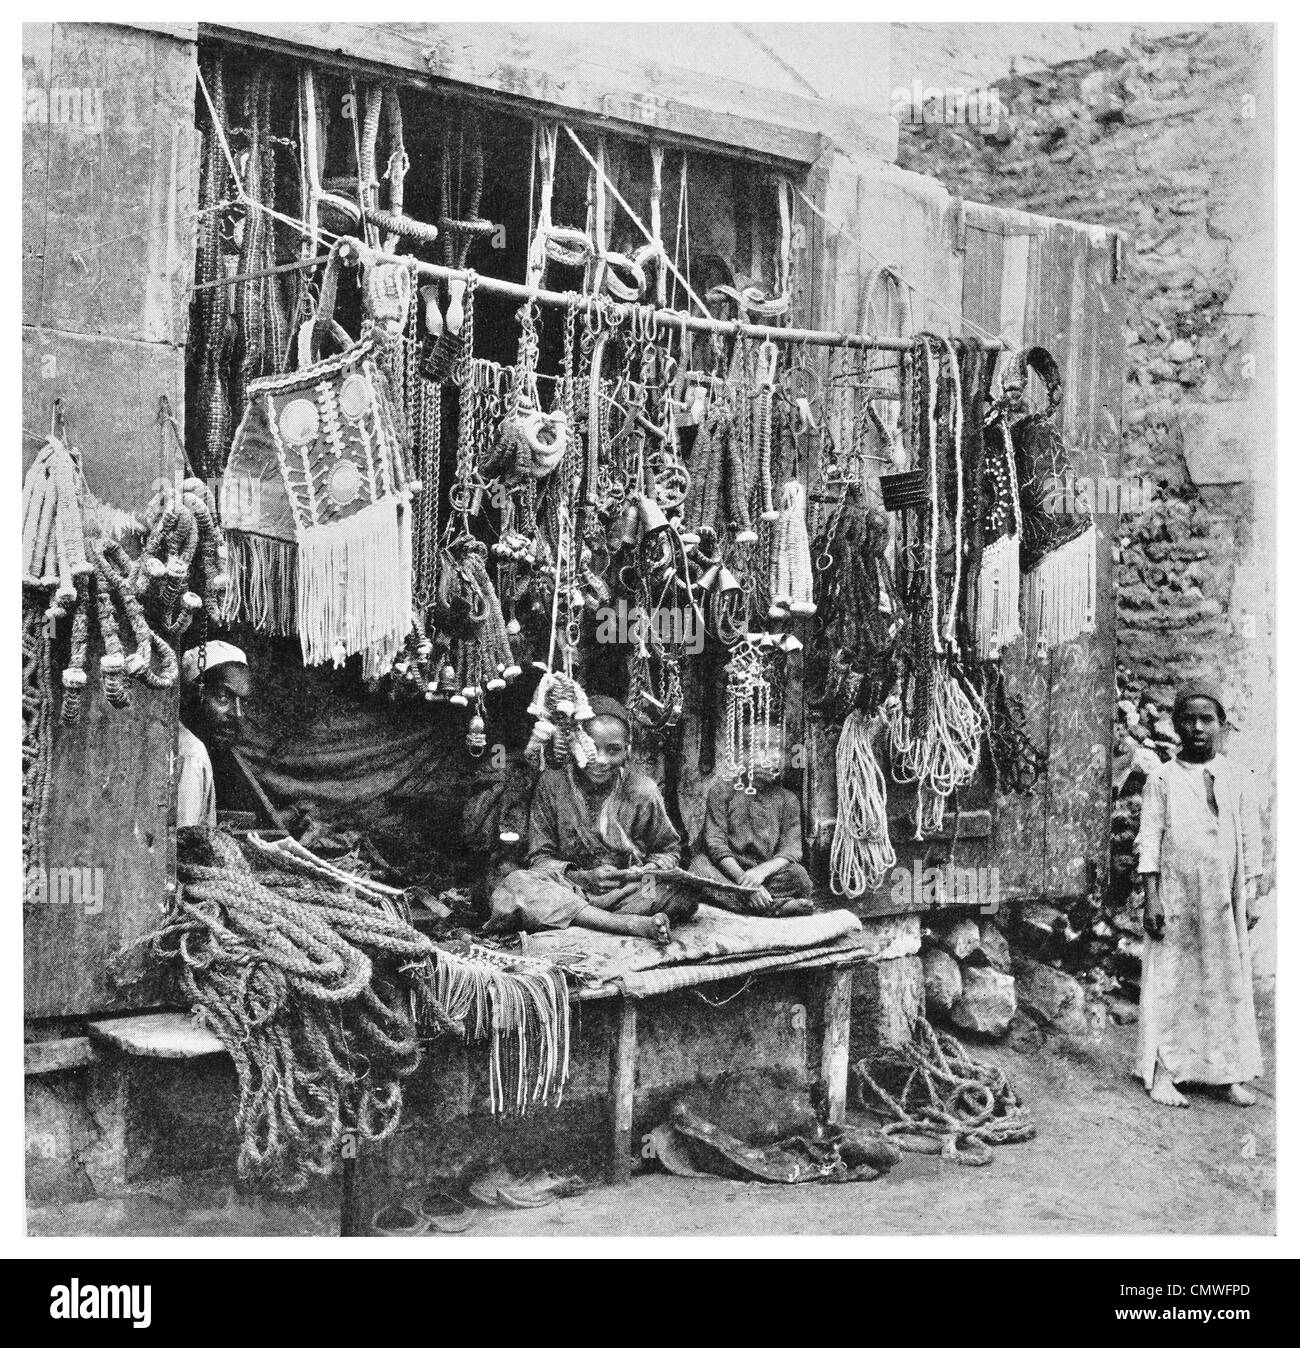 1925 Harness rope makers shop in Caro Egypt - Stock Image